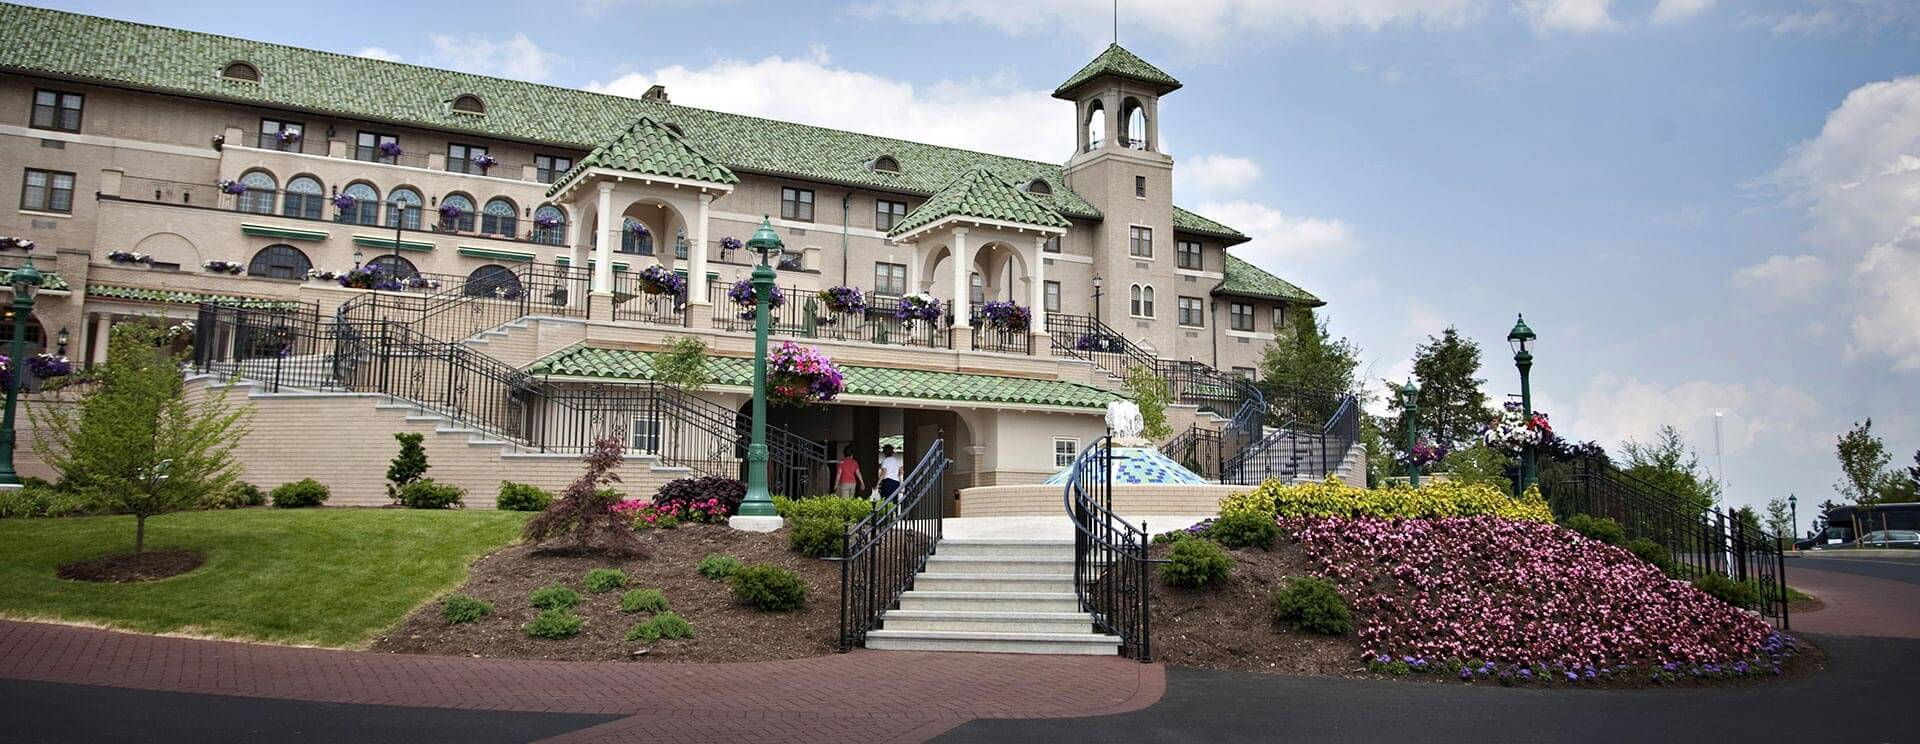 The Hotel Hershey Exterior